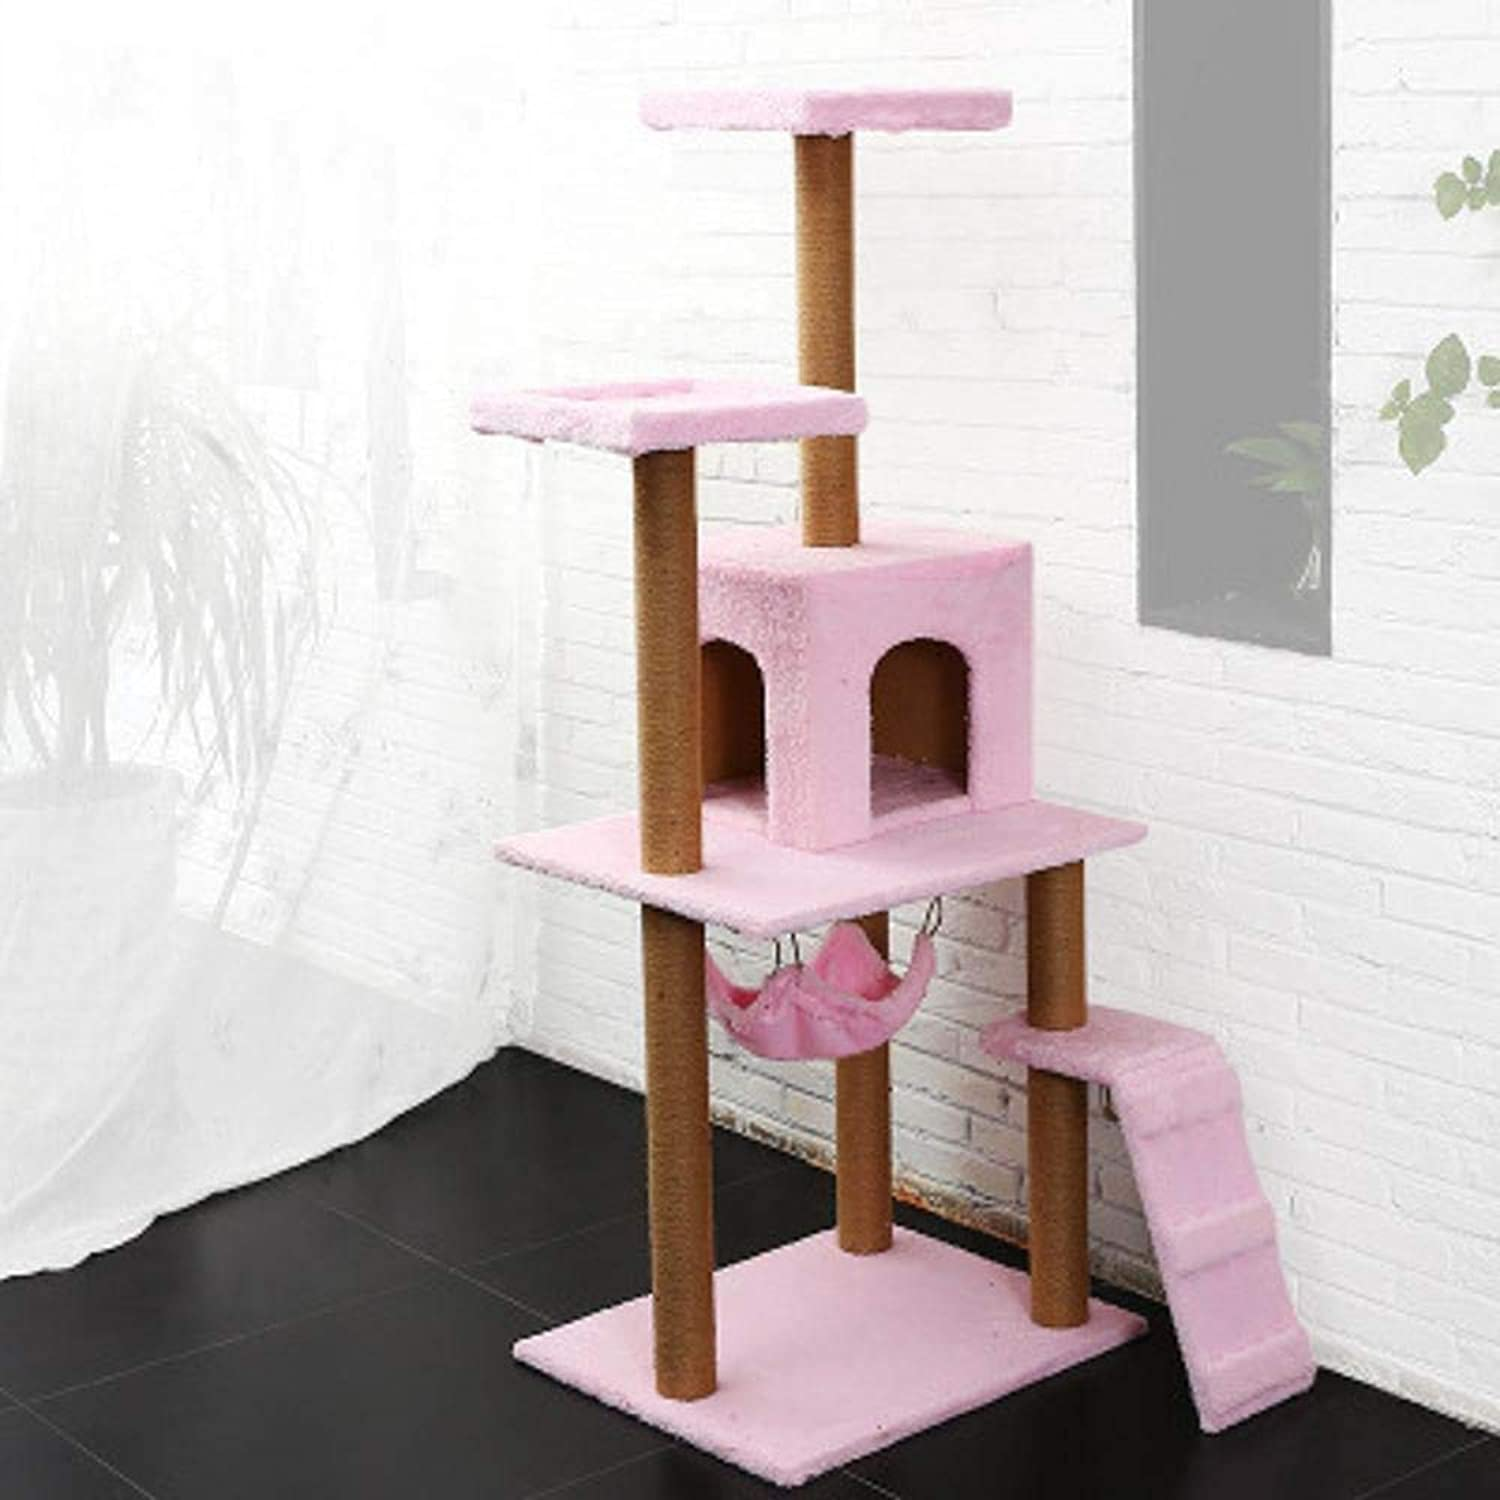 Axiba Play Towers Trees for Cats Large Cat climbing frame sisal pet cat toy Cat Scratch Board cat Jumping cat tree for game sleeping 50cm 59cm  150cm